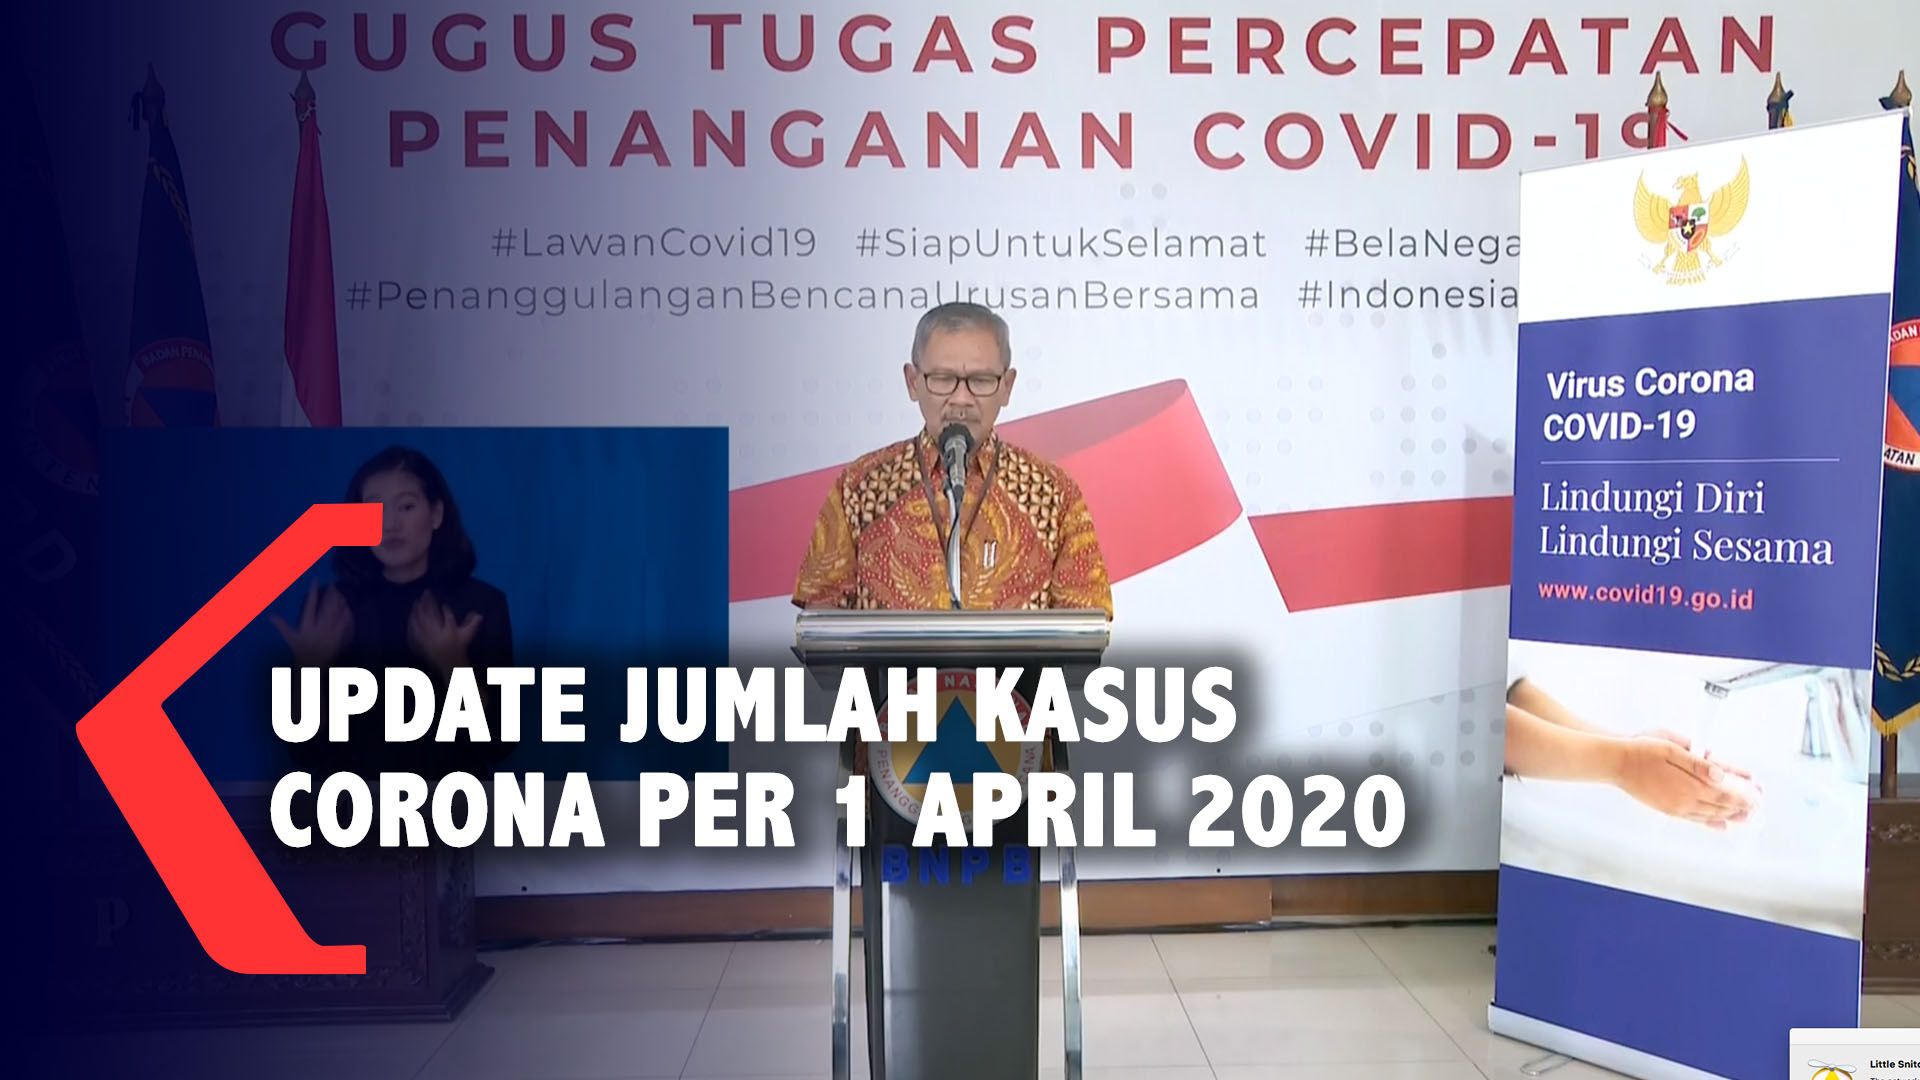 Full Update Jumlah Kasus Virus Corona Per 1 April 2020